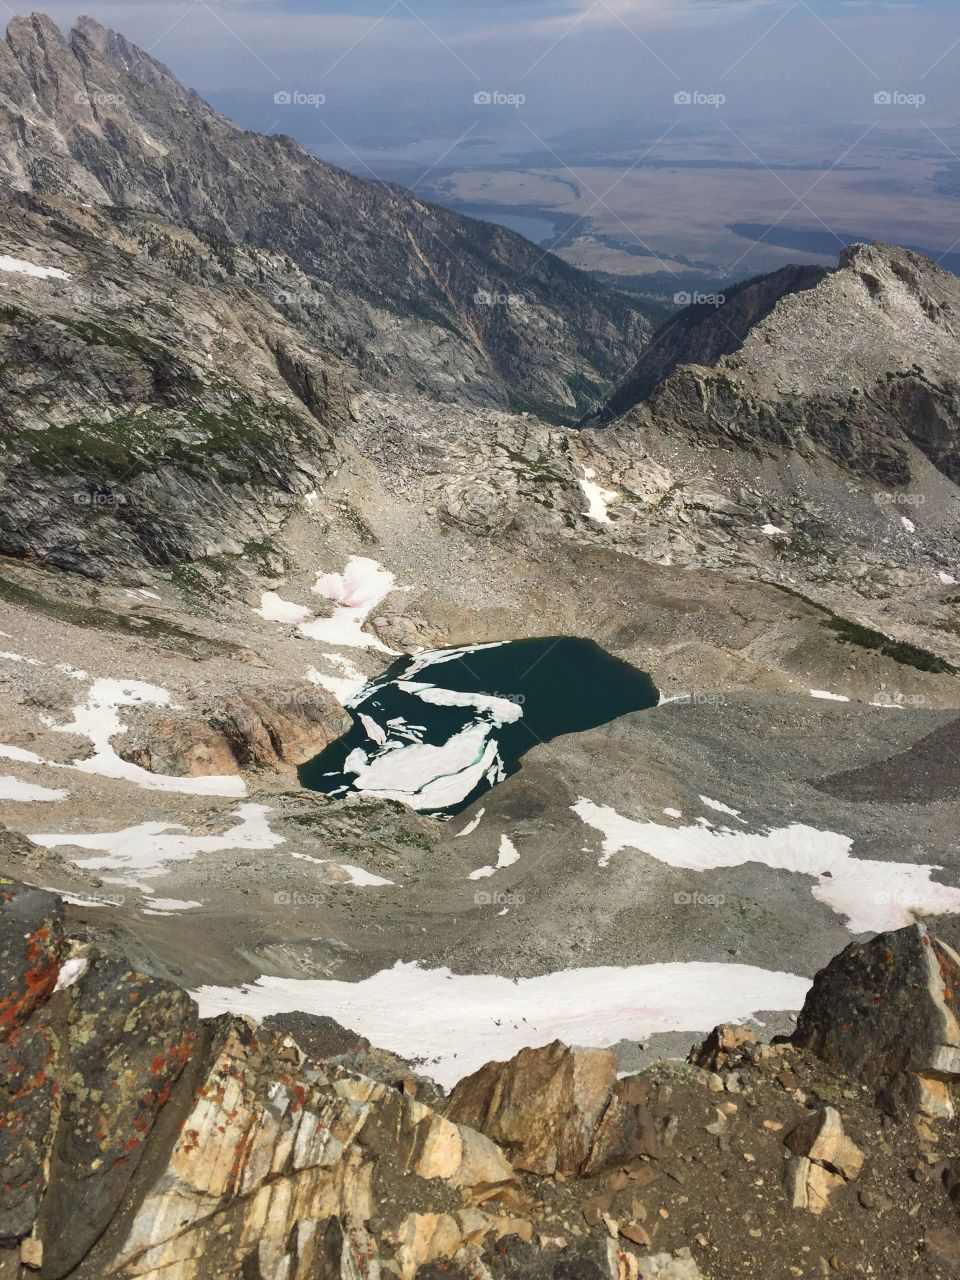 A hidden lake in the Grand Tetons, covered in glaciers